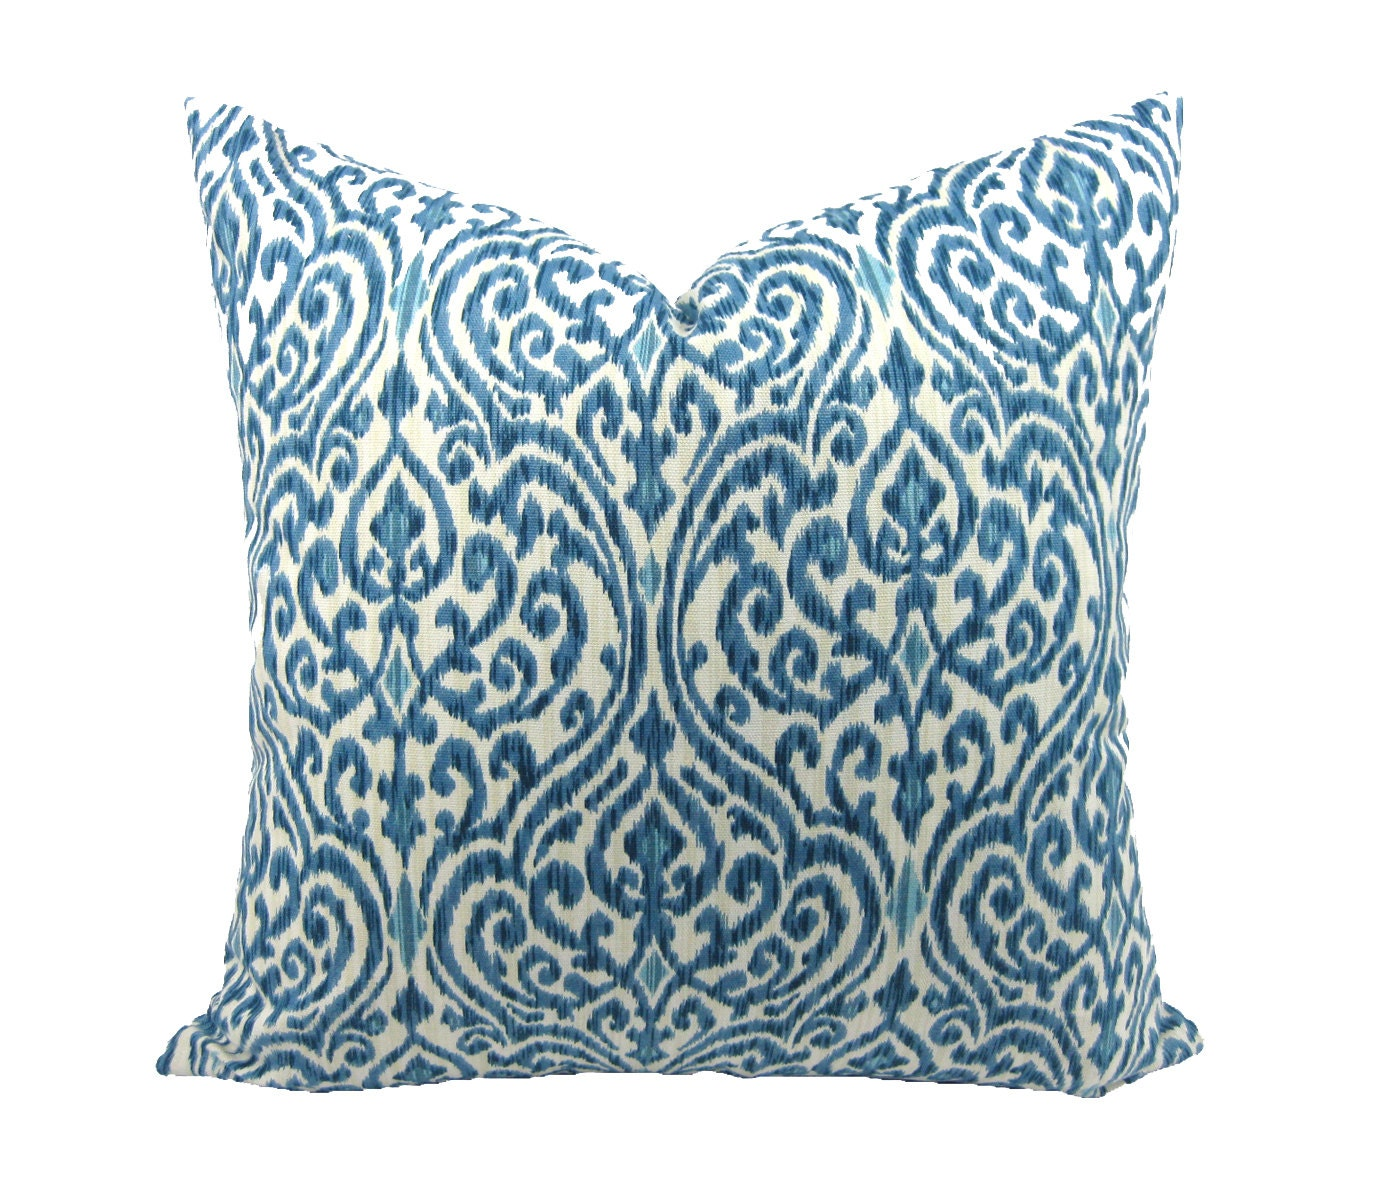 Decorator Pillow Cover, Ikat Pillow Cover, Toss Pillow Cover, Throw Pillow Cover, Cotton Pillow Cover, Hidden Zipper, 18 x 18 inches - TrellisHomeDecor